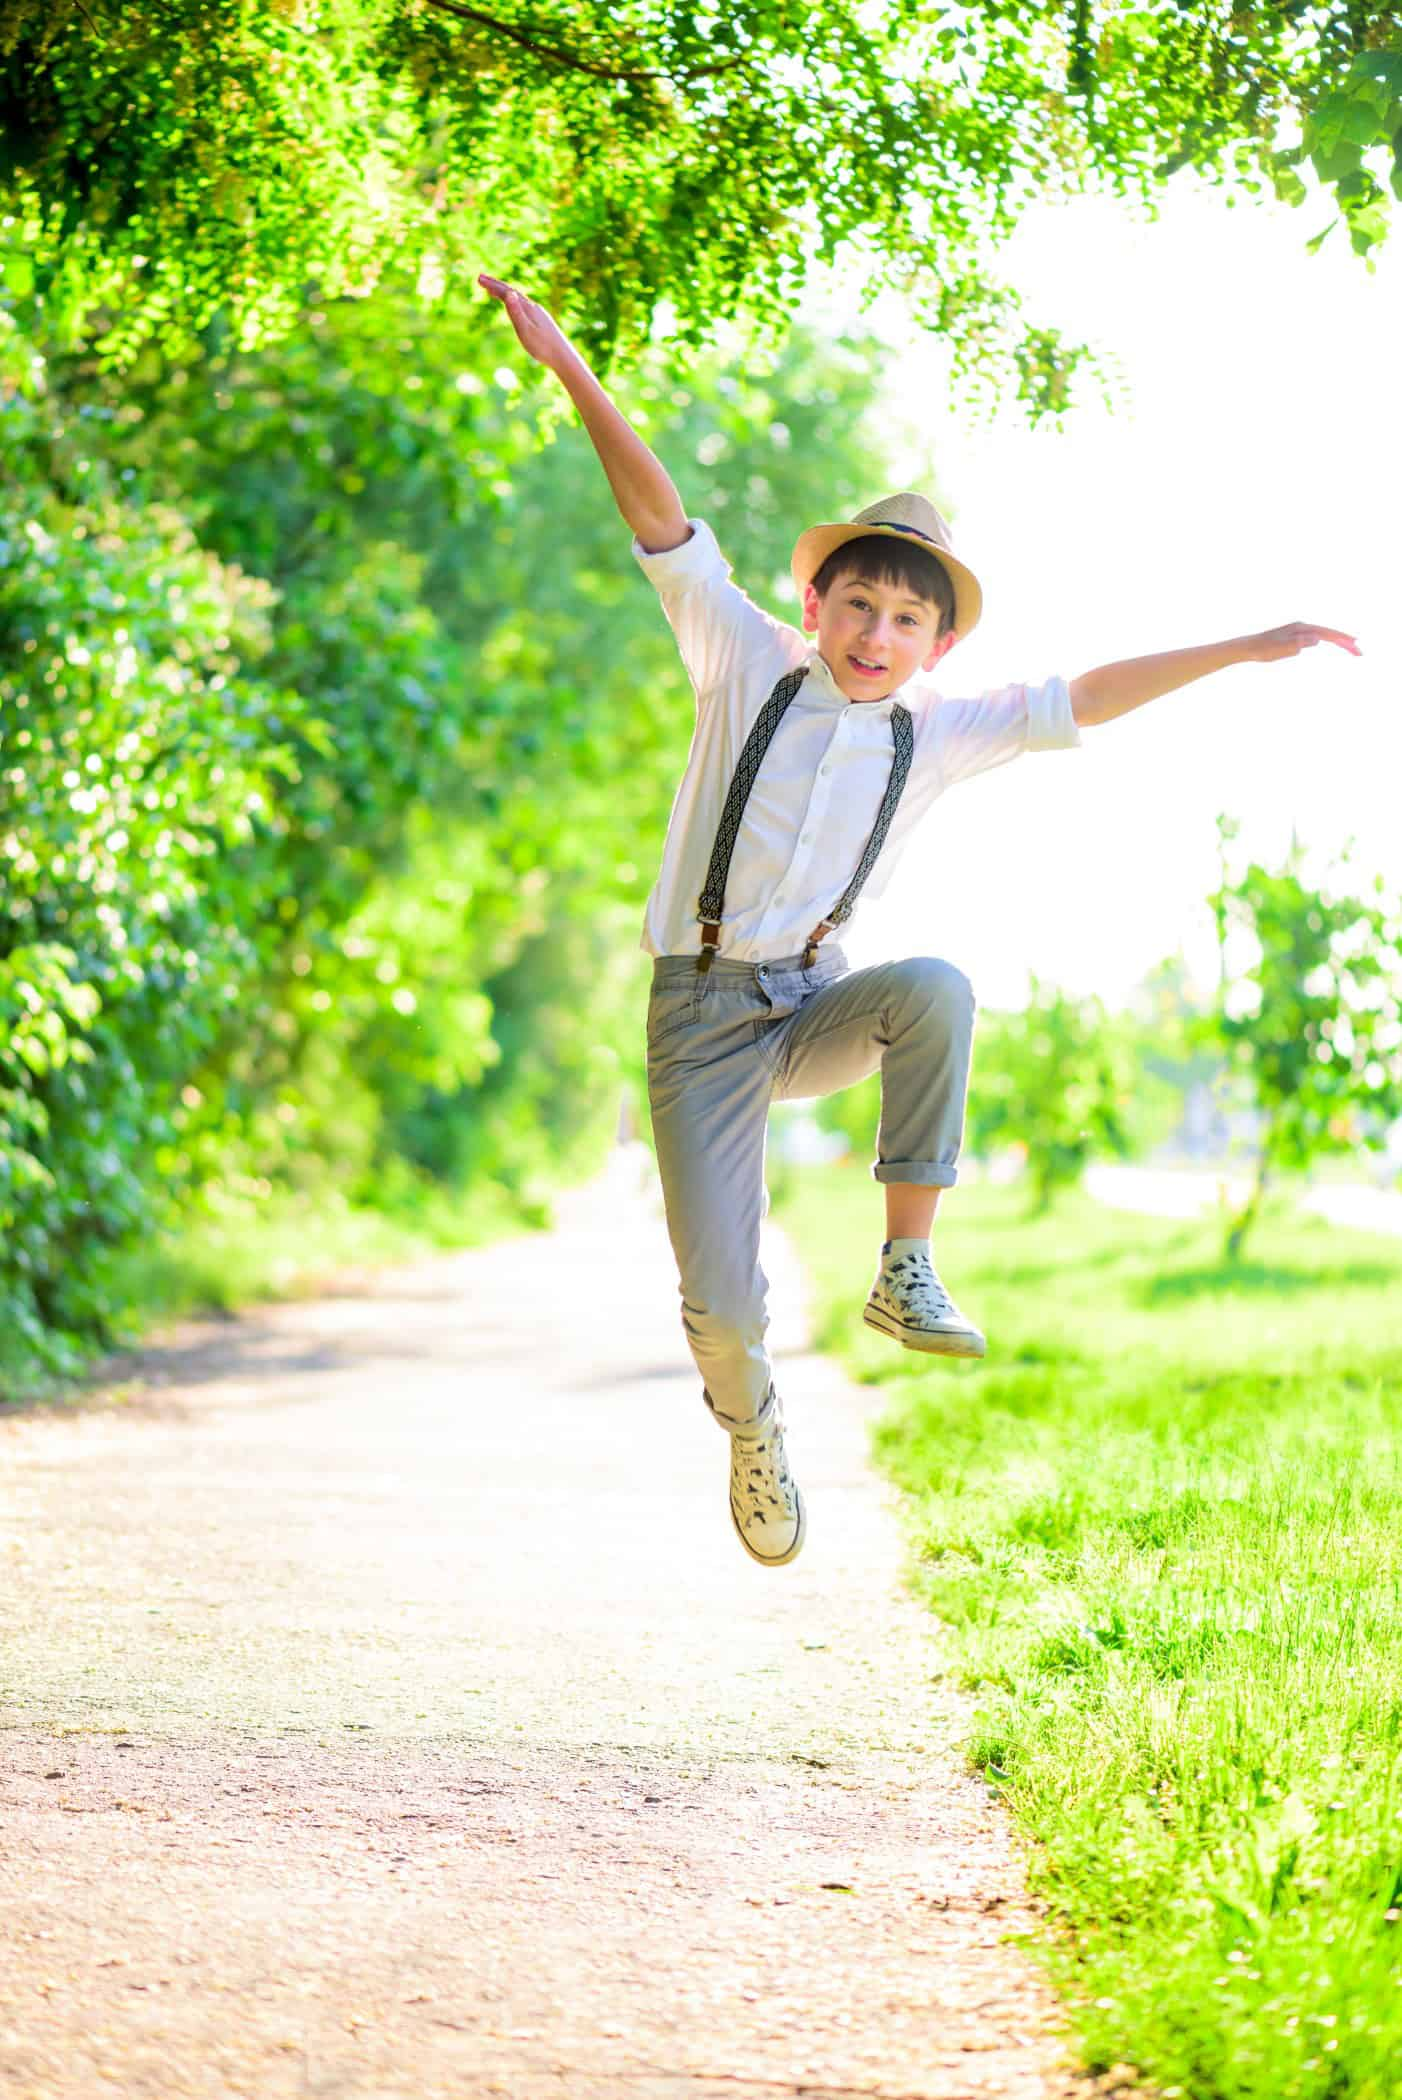 happy-boy-jumping-on-street-against-green-grass-soft-focus-summer-activities_t20_BajgPO 2